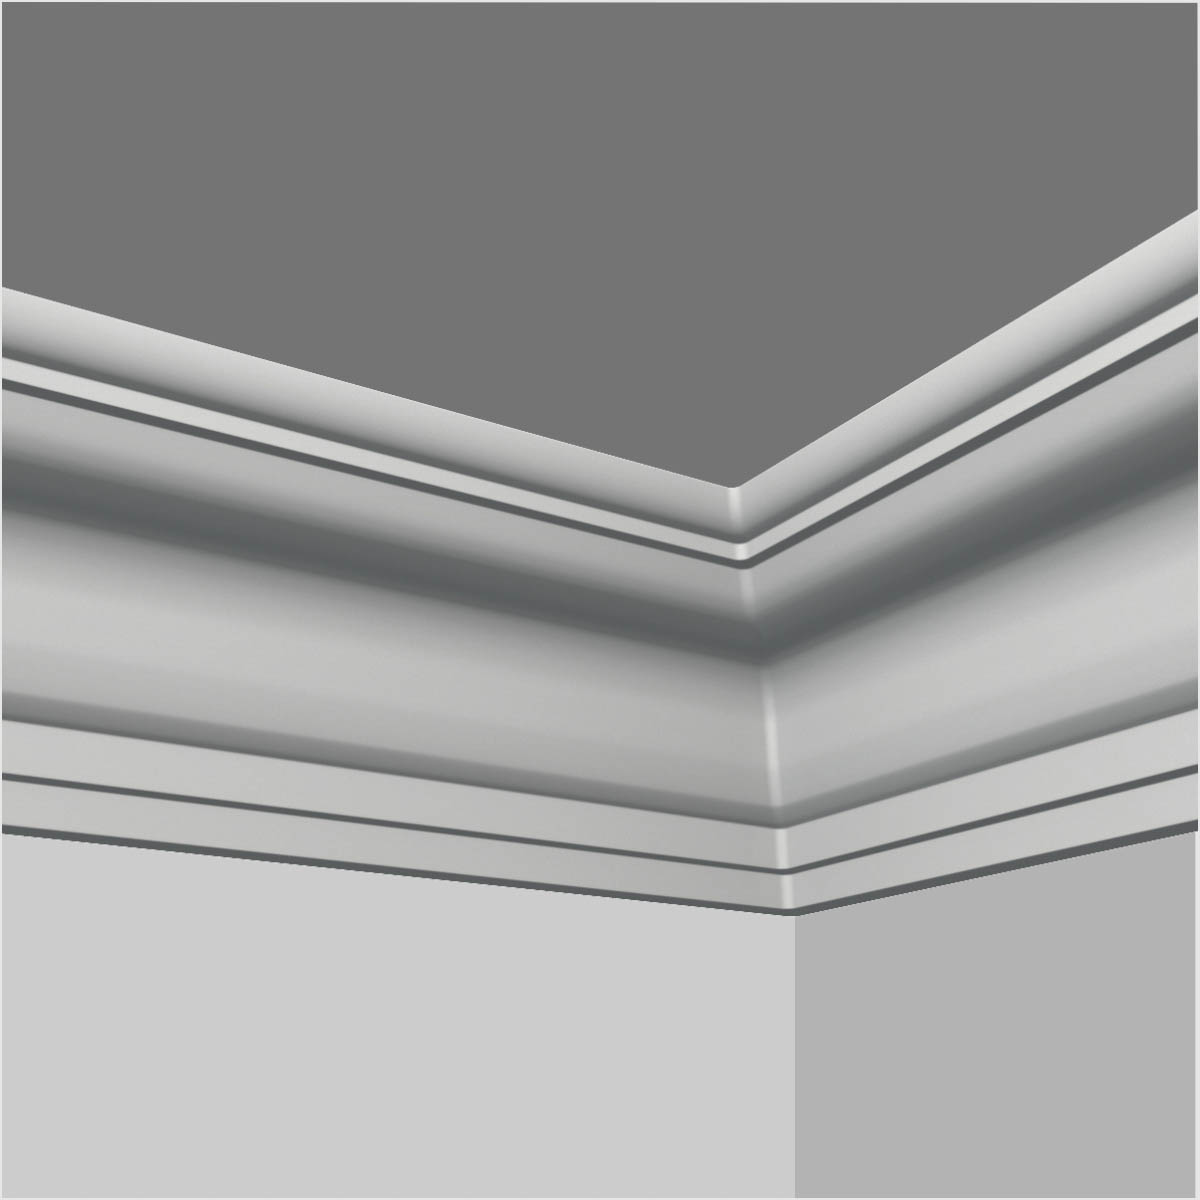 polyurethane plain kitchen crown molding